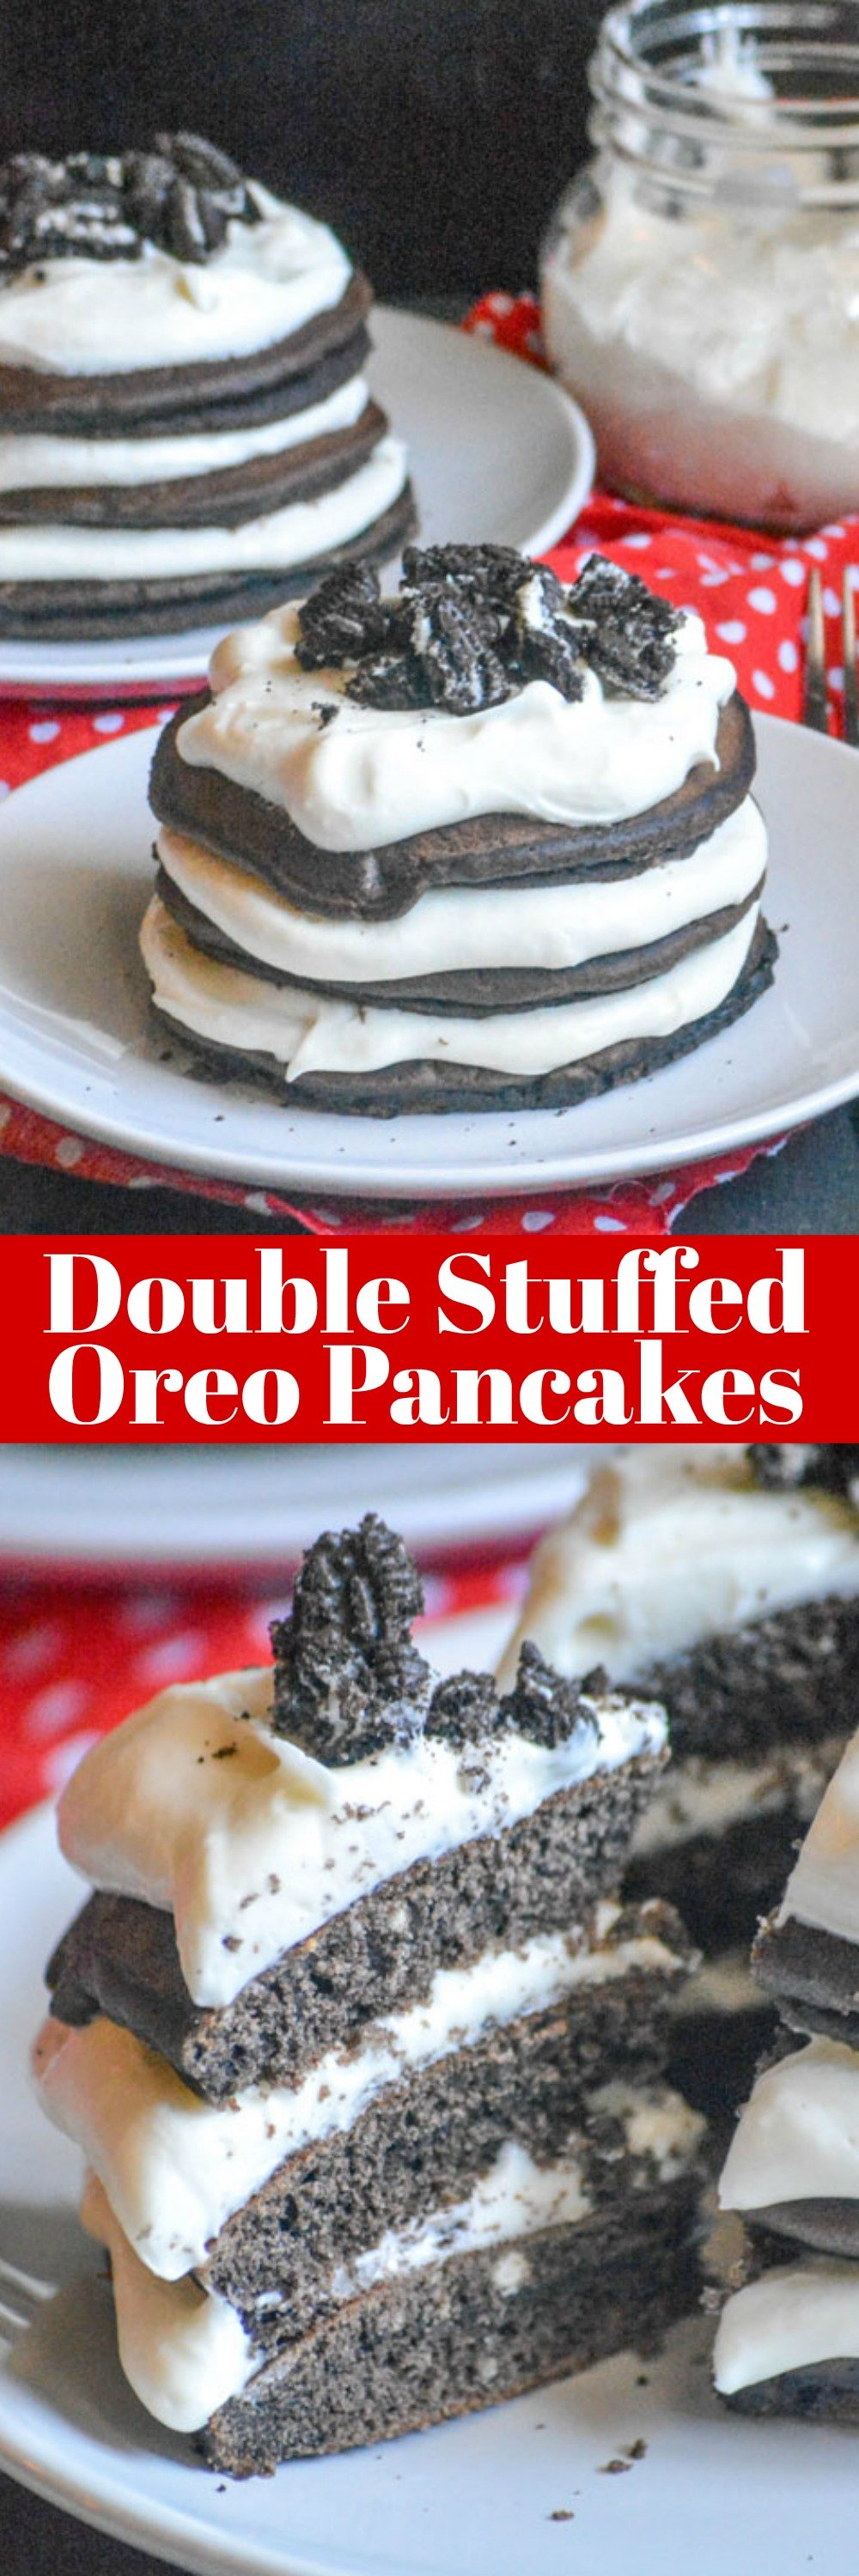 These delectable Double Stuffed Oreo Pancake Stacks are perfect for sharing, and for sharing a moment together. Luscious cream cheese based oreo filling is liberally spread between layers of chocolate oreo flavored fluffy pancakes.